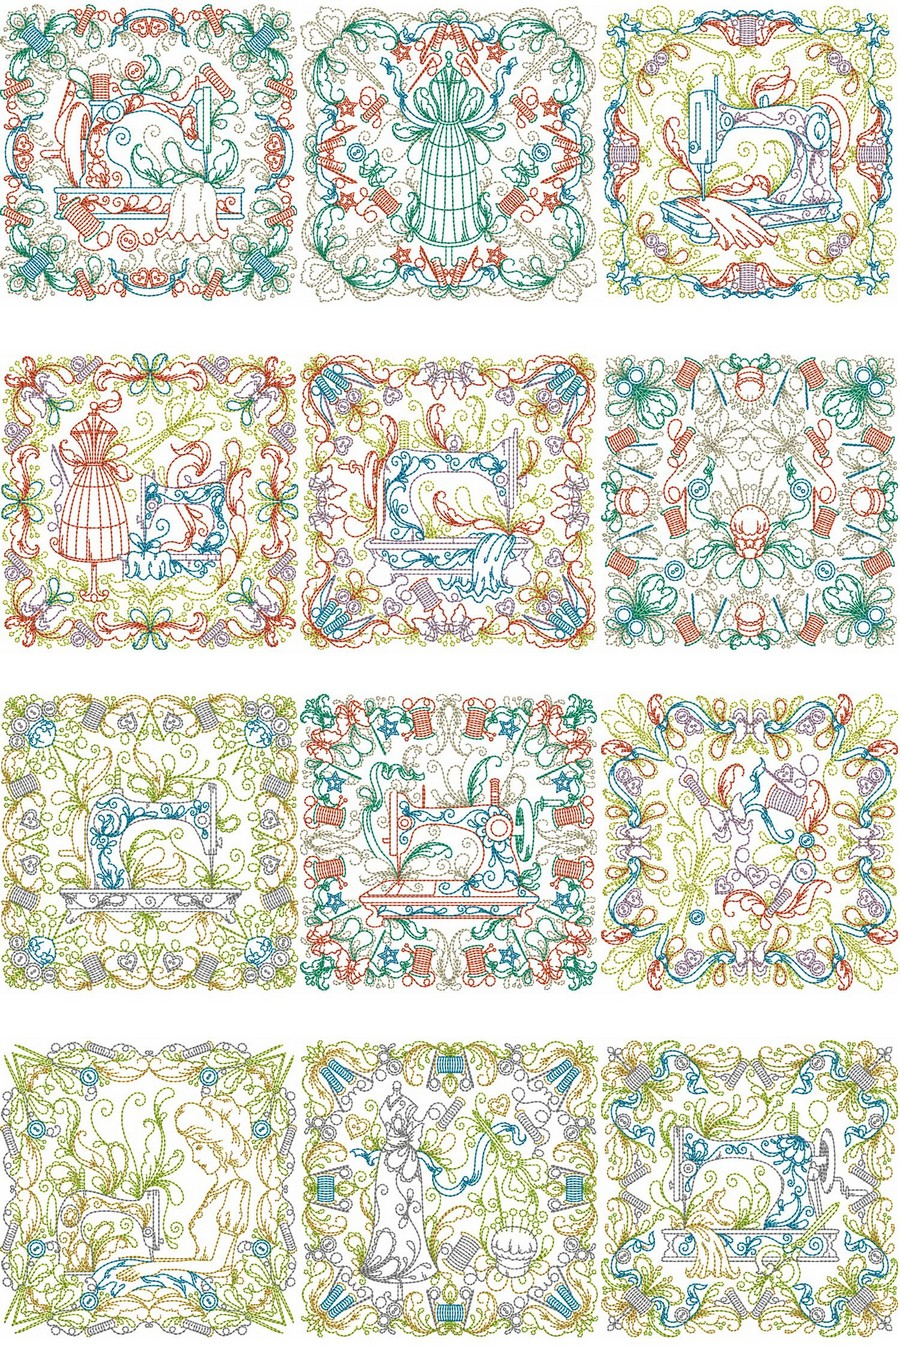 Sewing Room Blocks Machine Embroidery Designs By Sew Swell